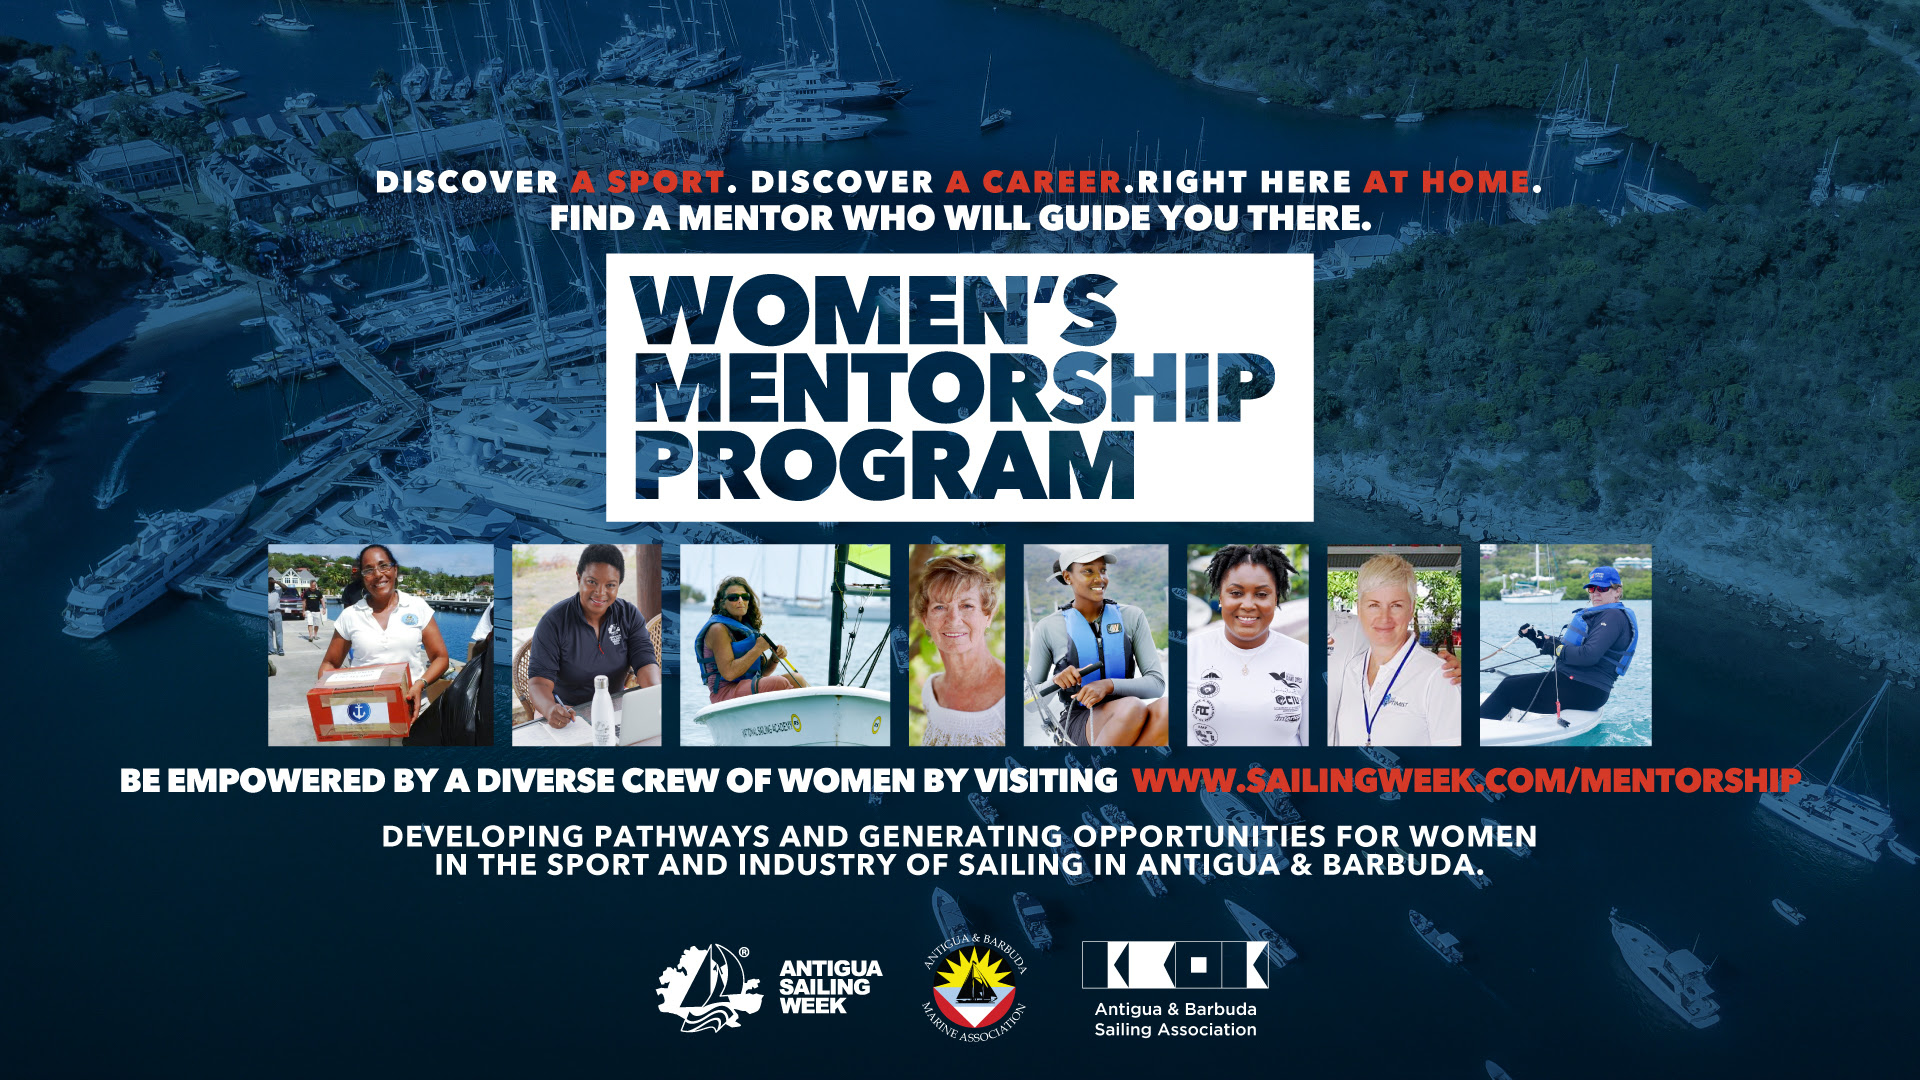 Women's Mentorship Programme launches in Antigua and Barbuda